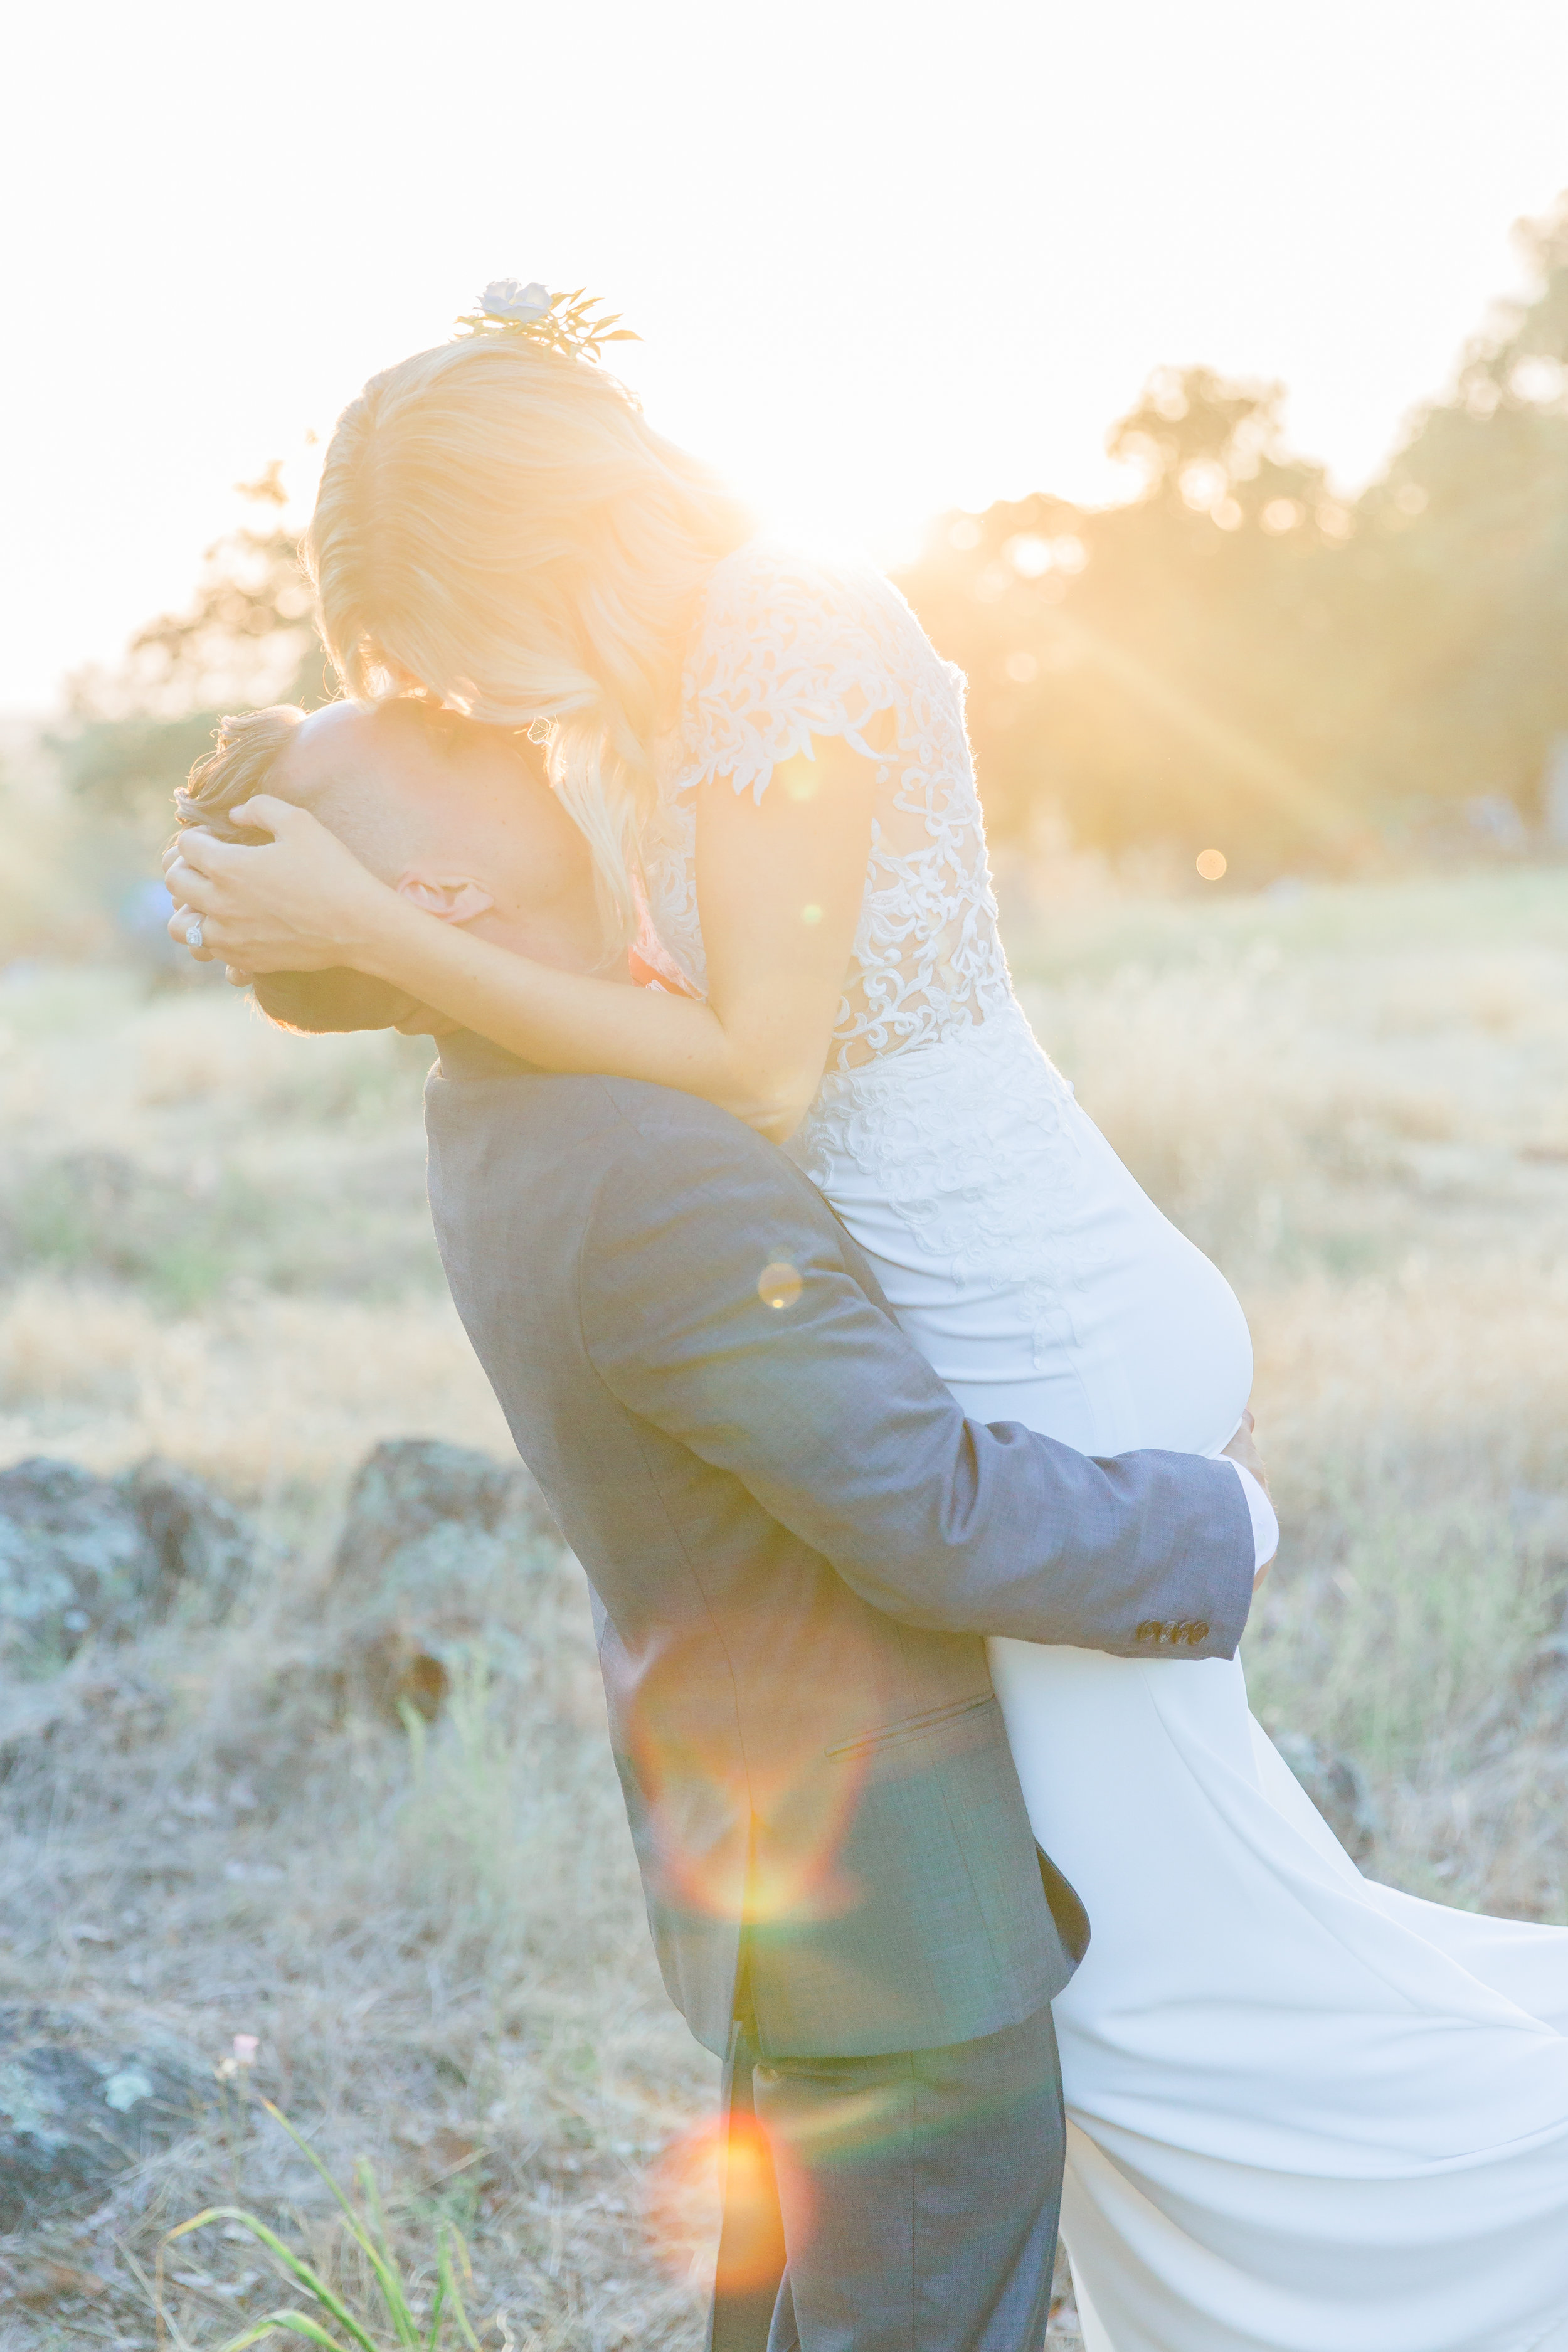 Kaitlynn and Colby - Married - Sneaks - Lauren Alisse Photography-105.jpg